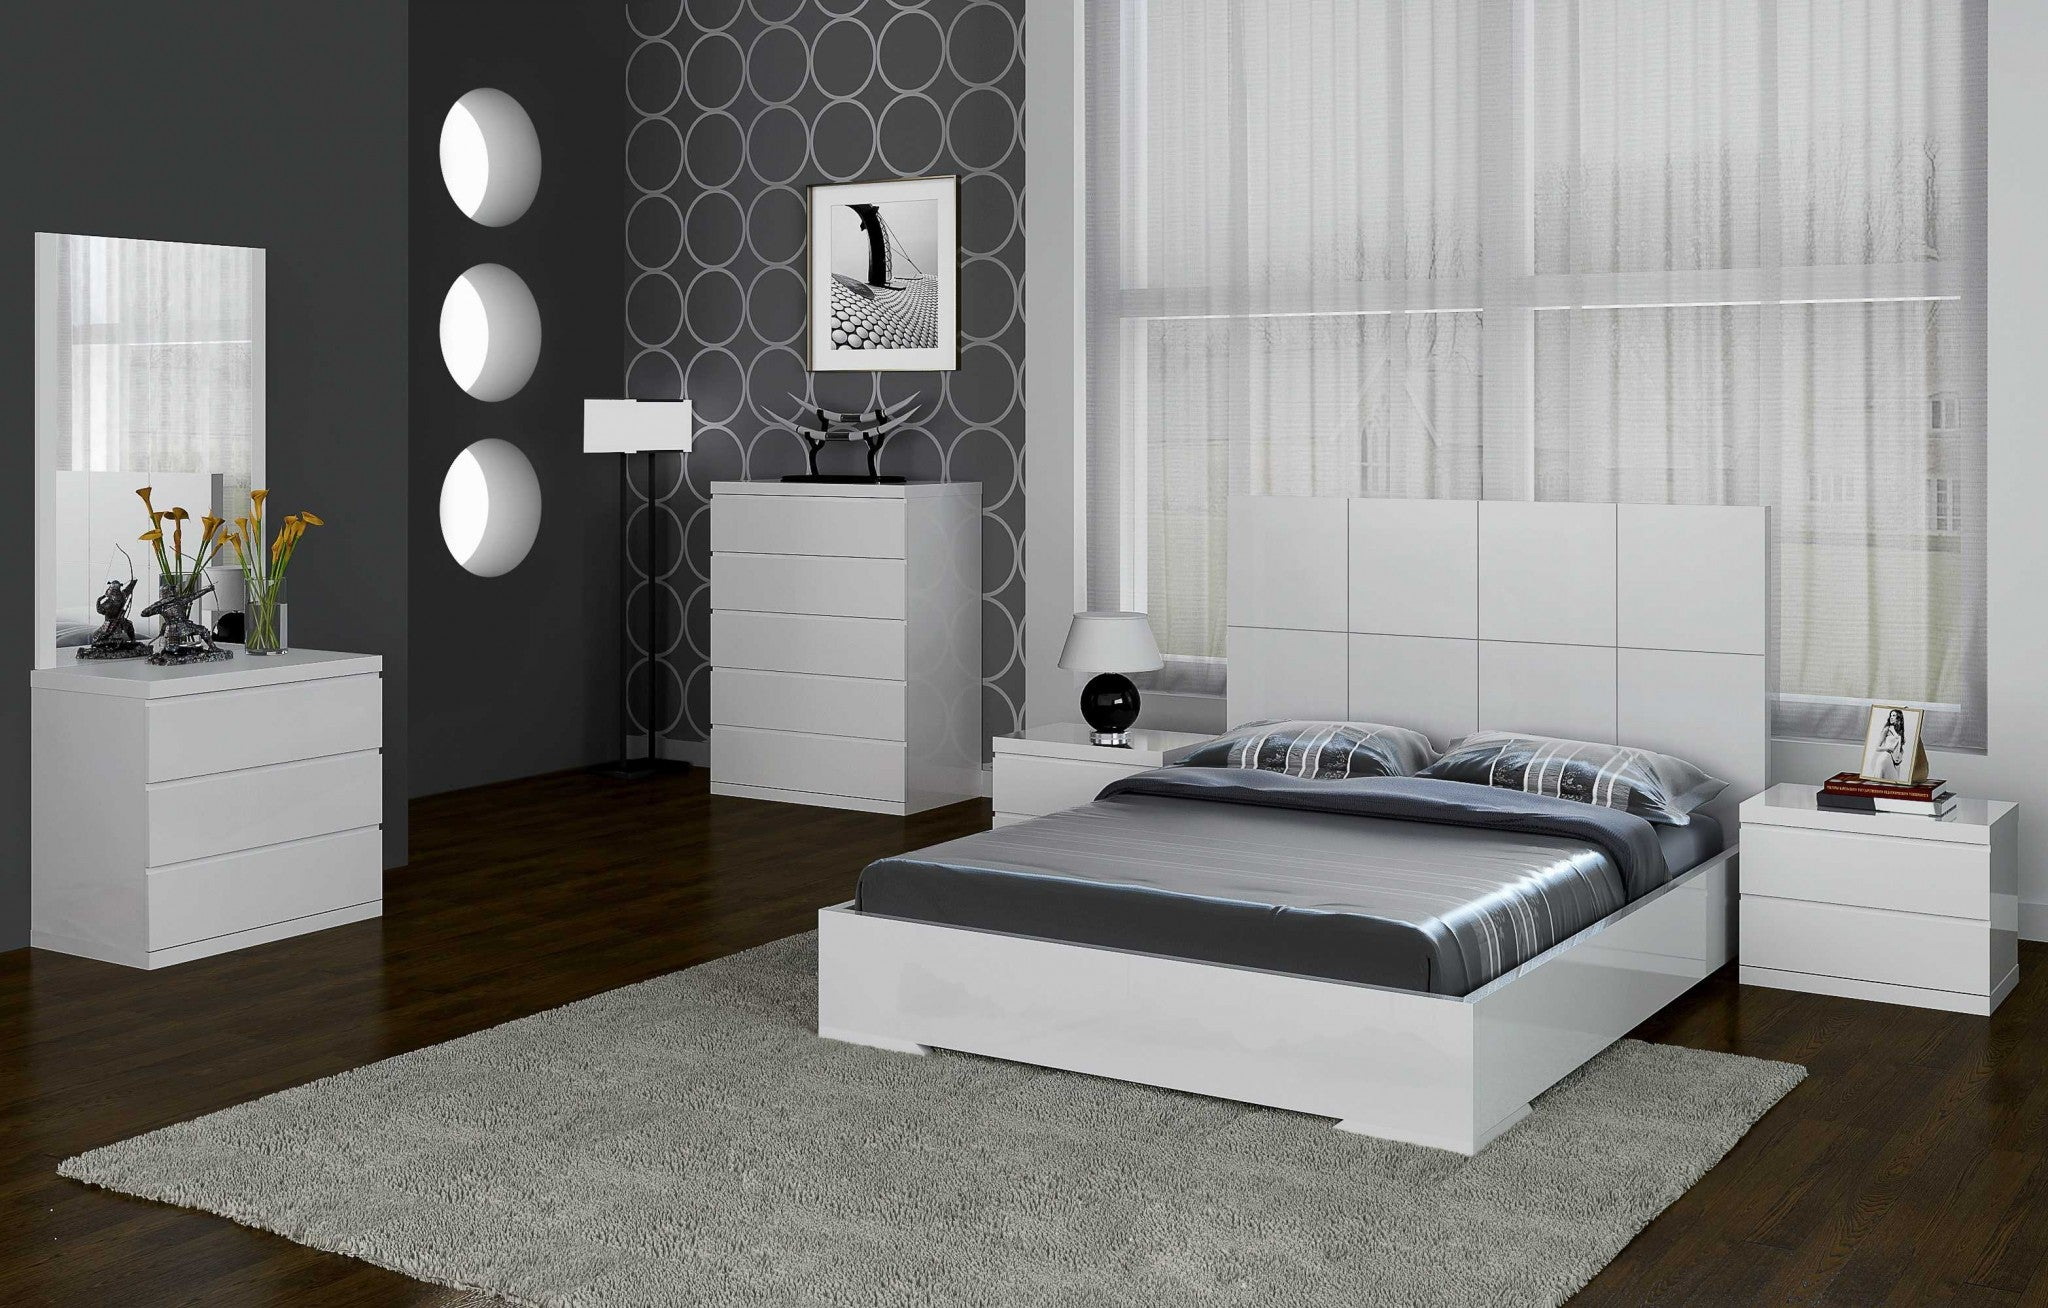 "81"" X 85"" X 48"" White Stainless Steel King Bed"